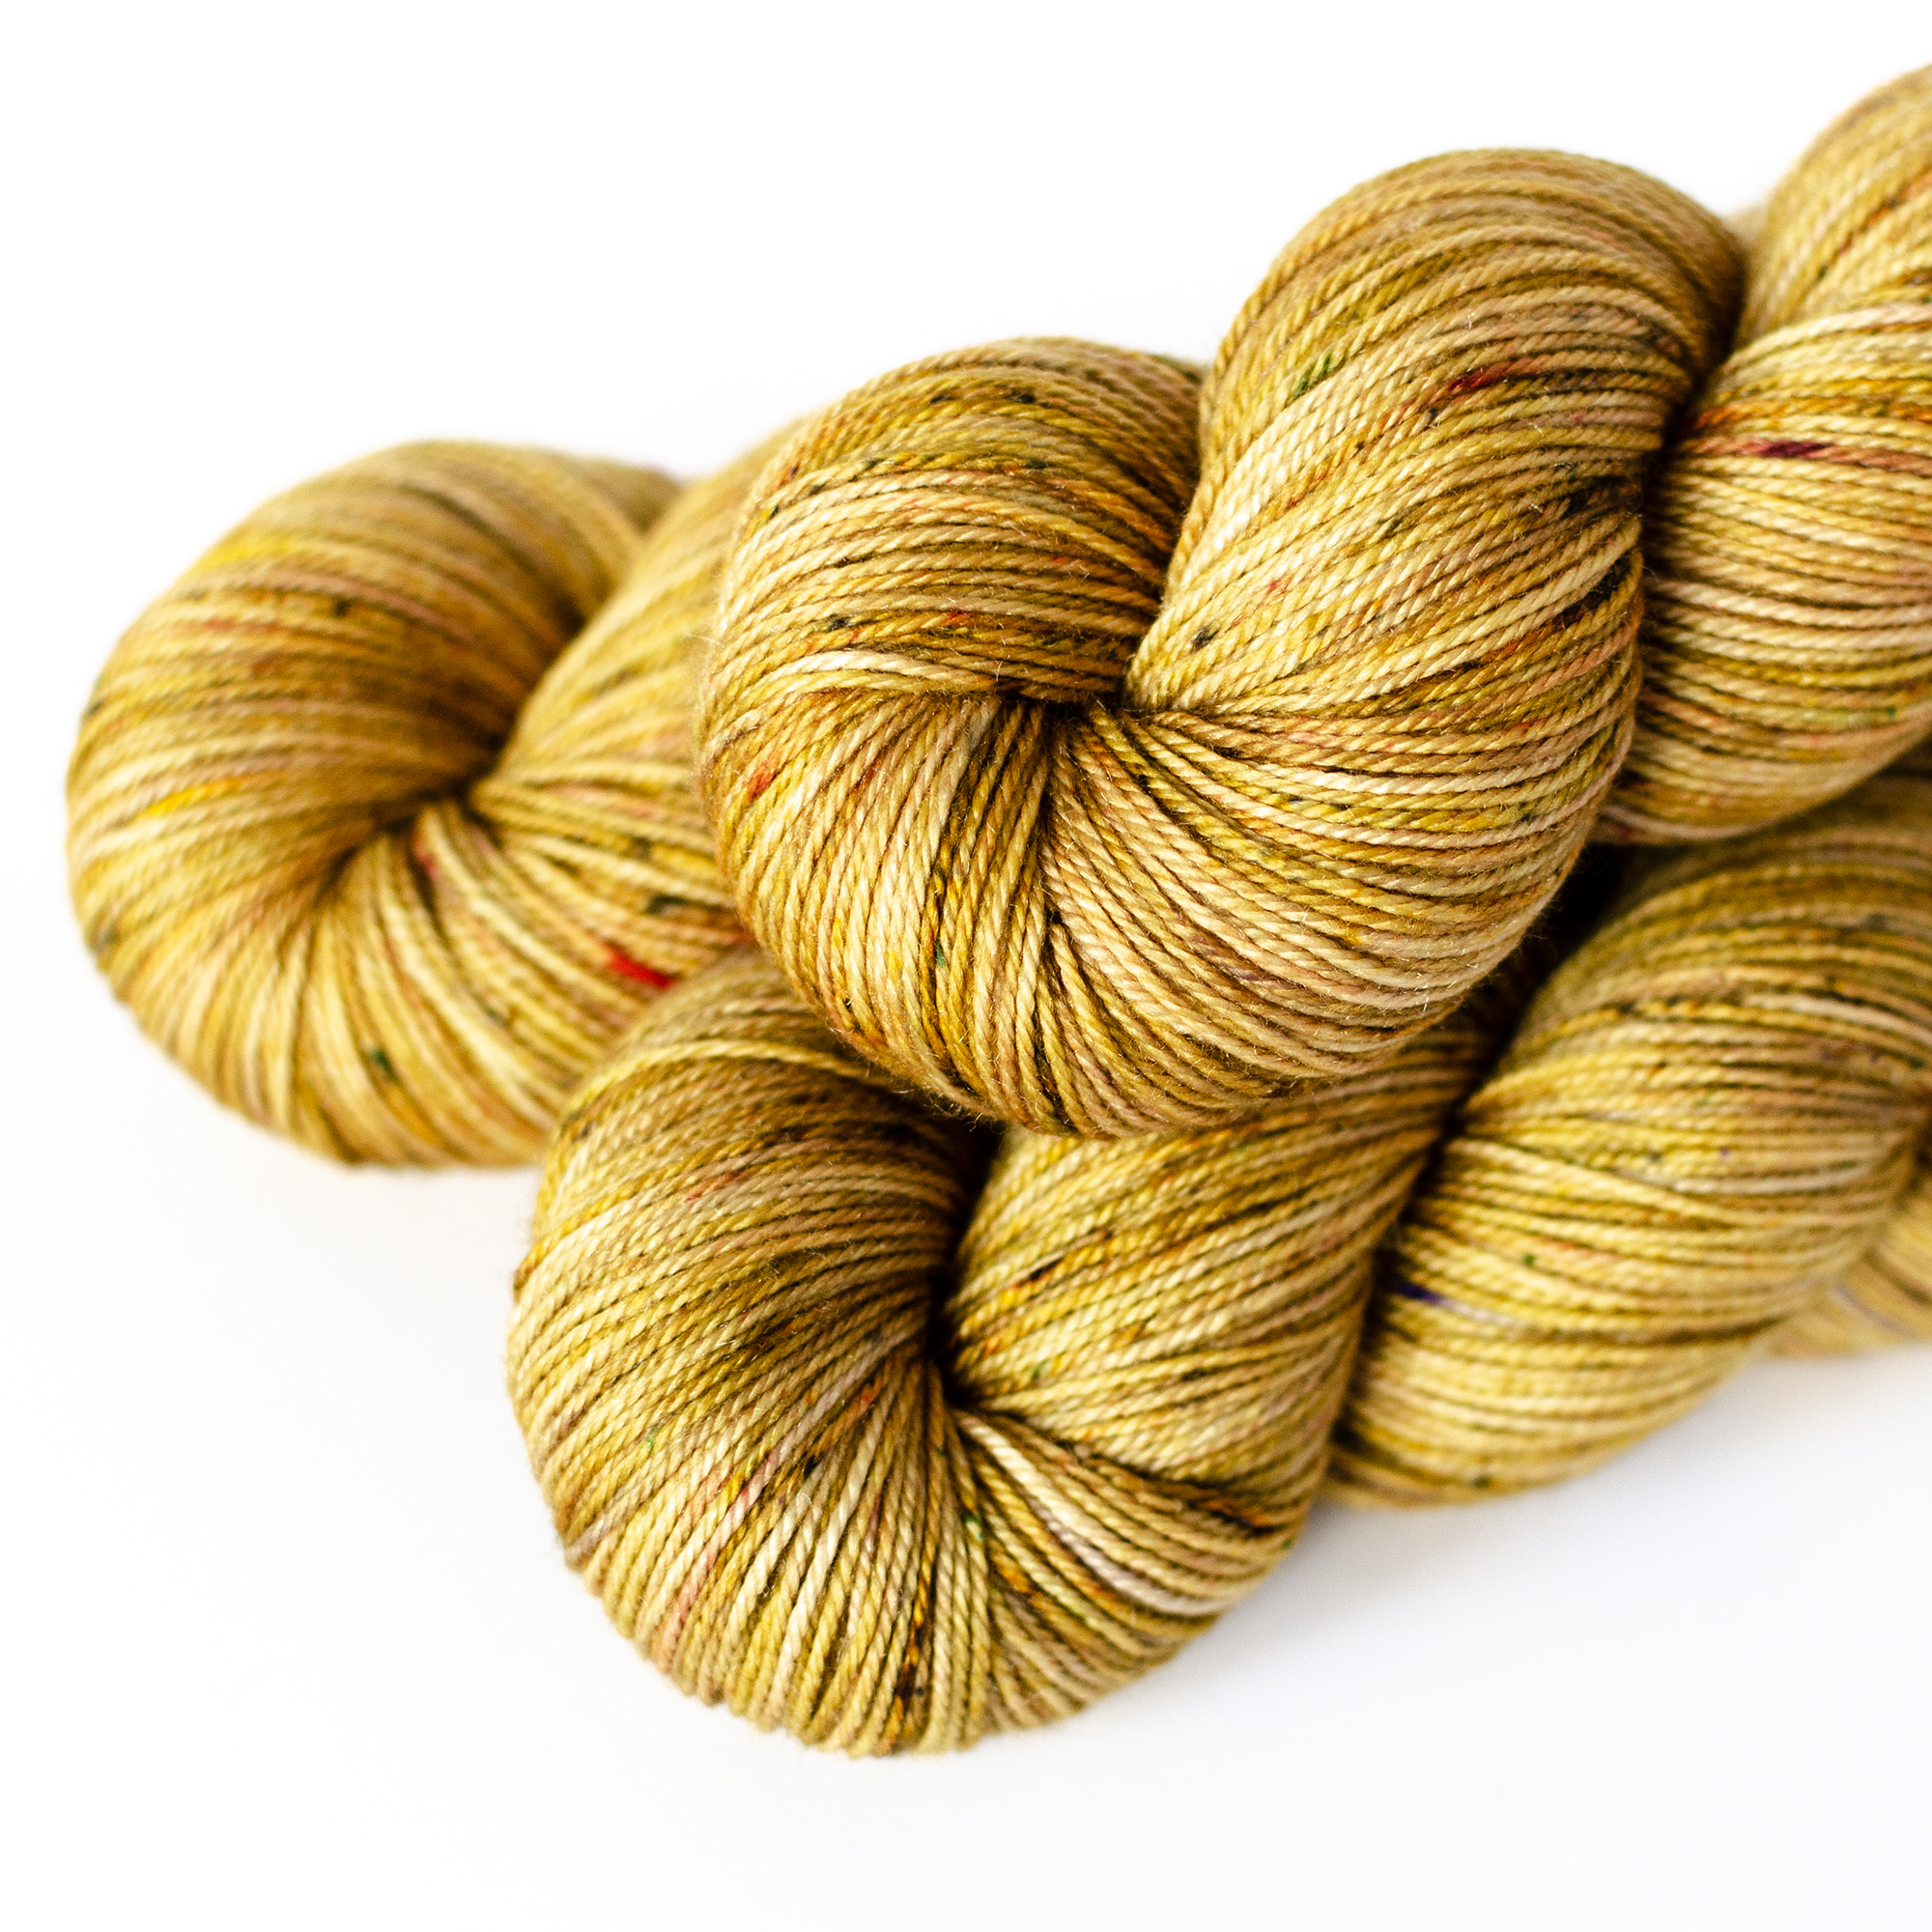 MCS Sport - $30  75% SW Merino, 15% Cashmere, 10% Silk  3 plies  396 yards / 362 meters  115 grams  Heavy Fingering - Sport Weight  US 1-6 / 2.25-4mm  Hand wash / Dry flat  This base falls between fingering and sport. It's is soft and smooth and a good amount of drape.